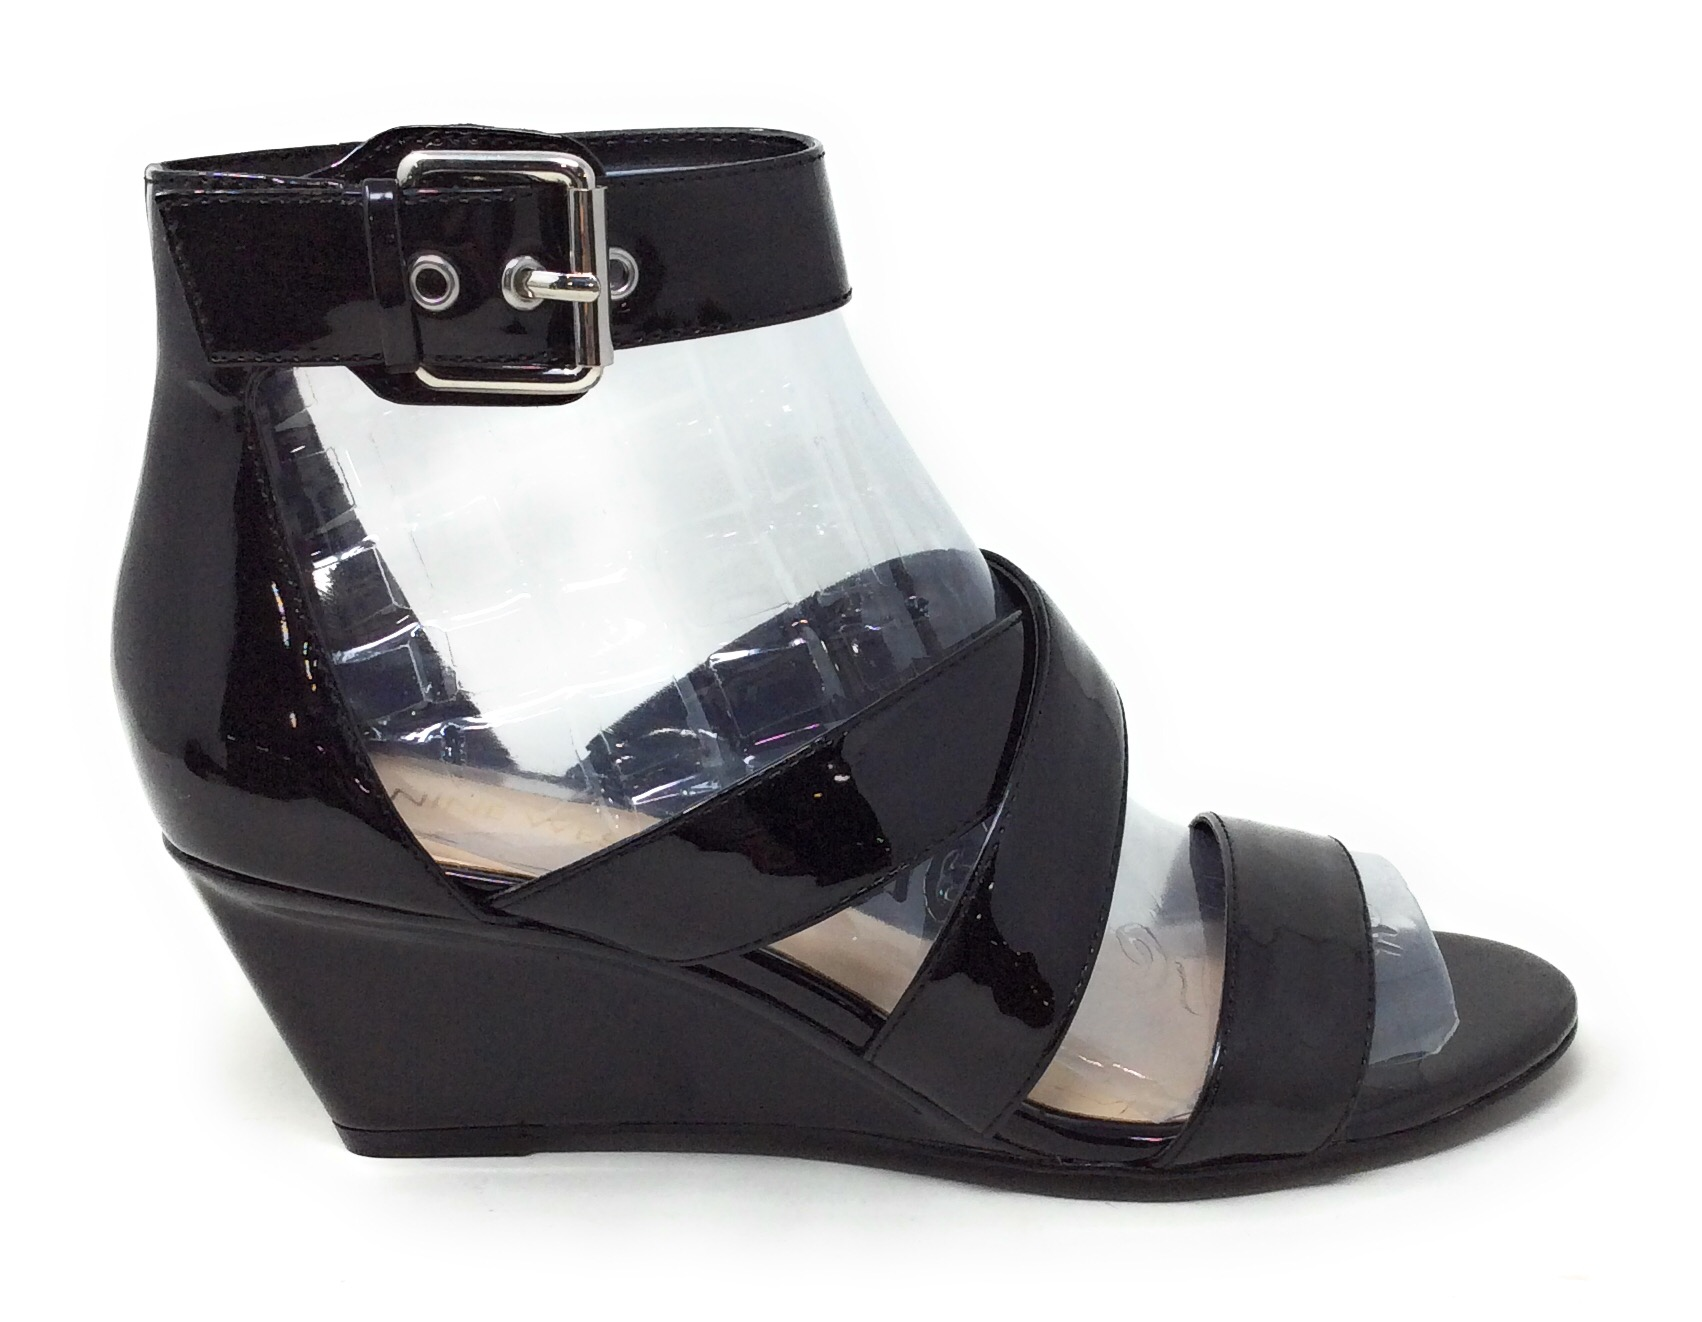 Details about Nine West Womens Piwow Wedge Sandals Faux Patent Black Size 7.5 M US